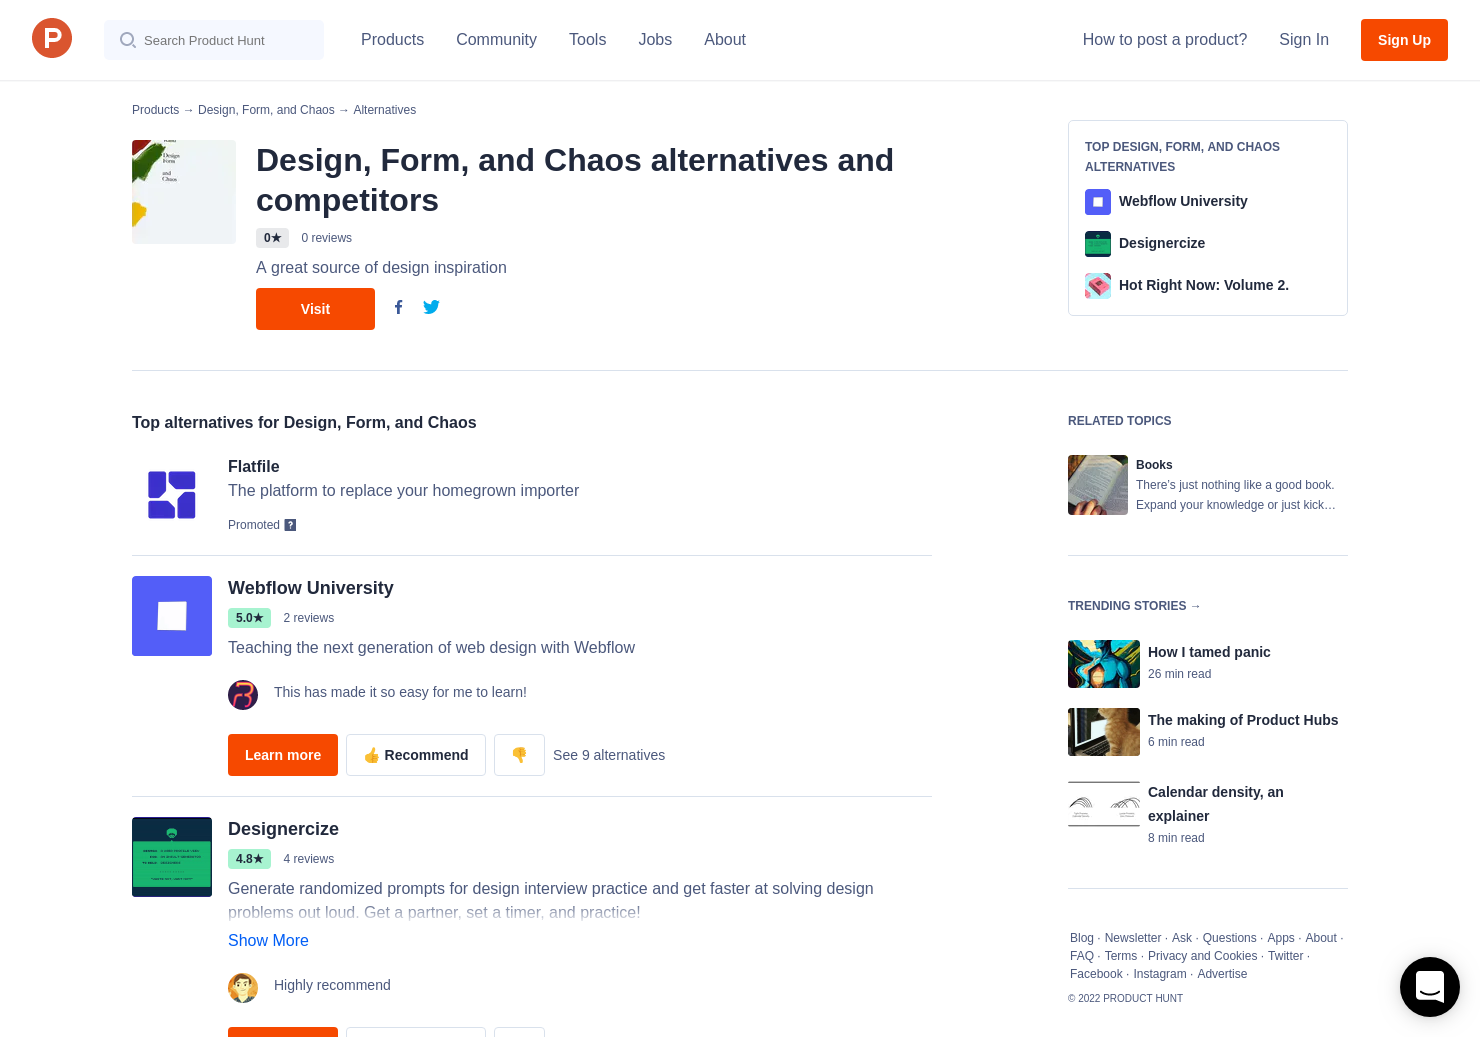 4 Alternatives to Design, Form, and Chaos | Product Hunt